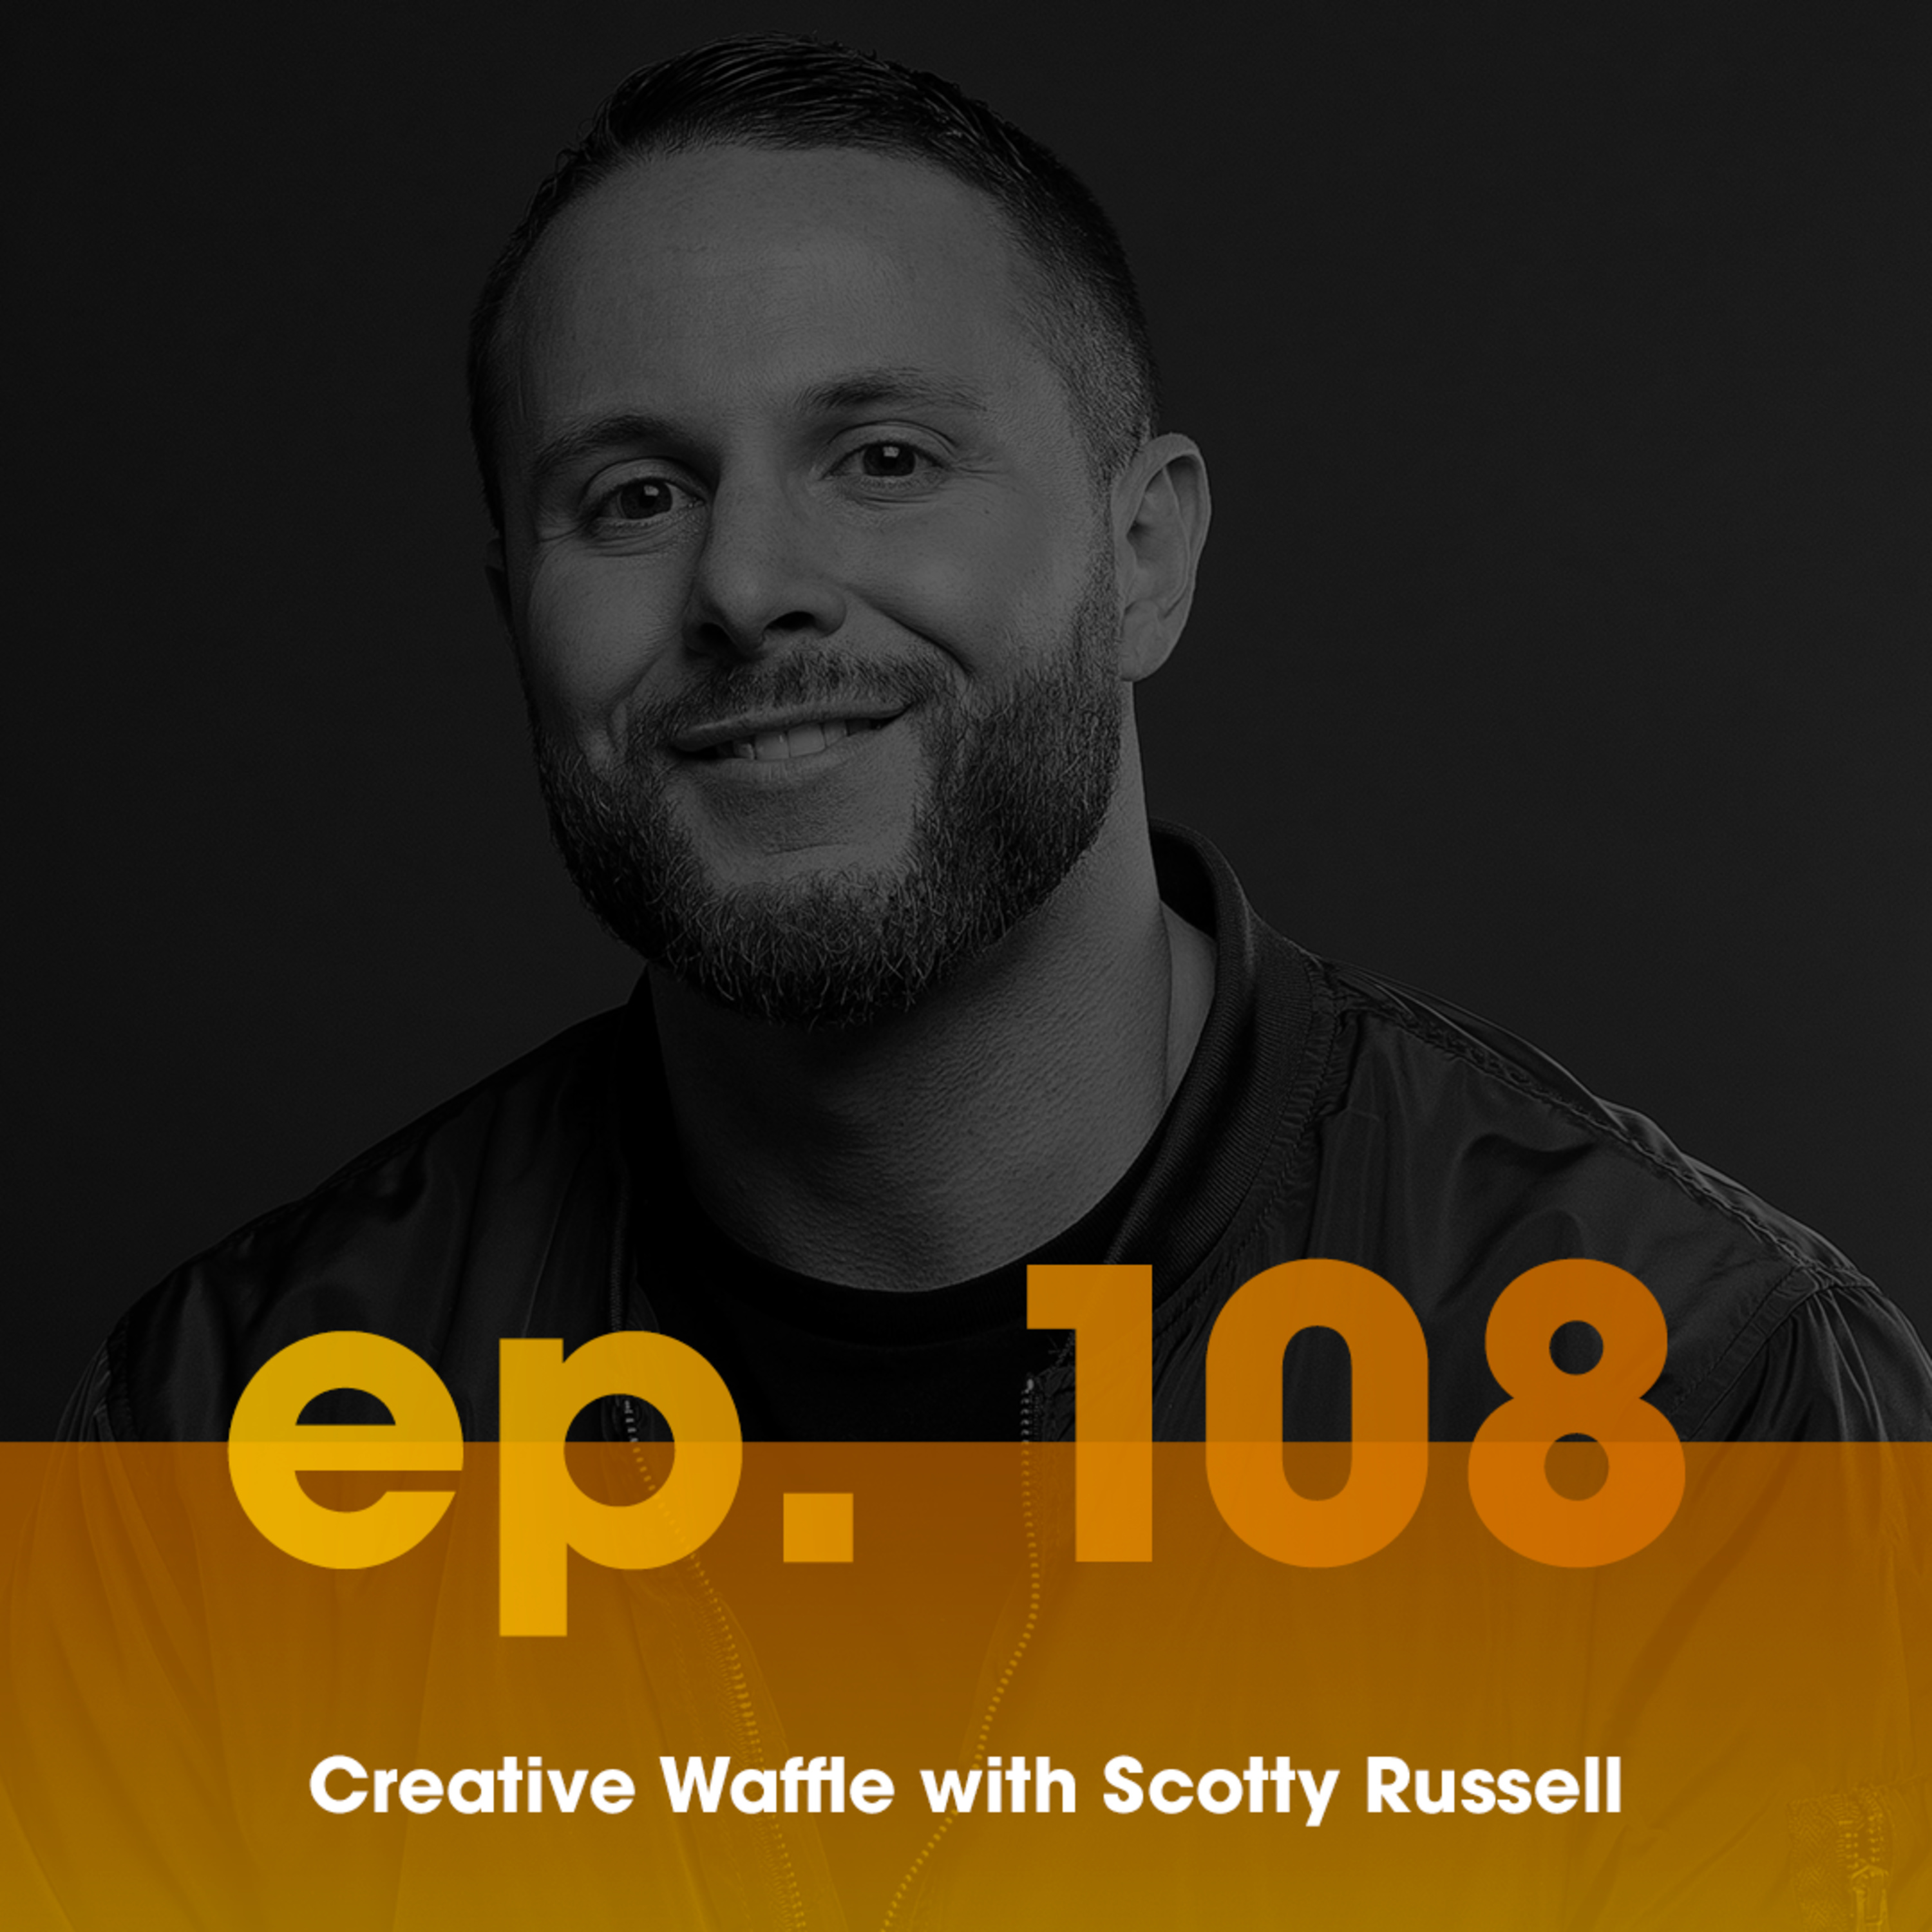 Scotty Russell \\ Ep. 108 Creative Waffle